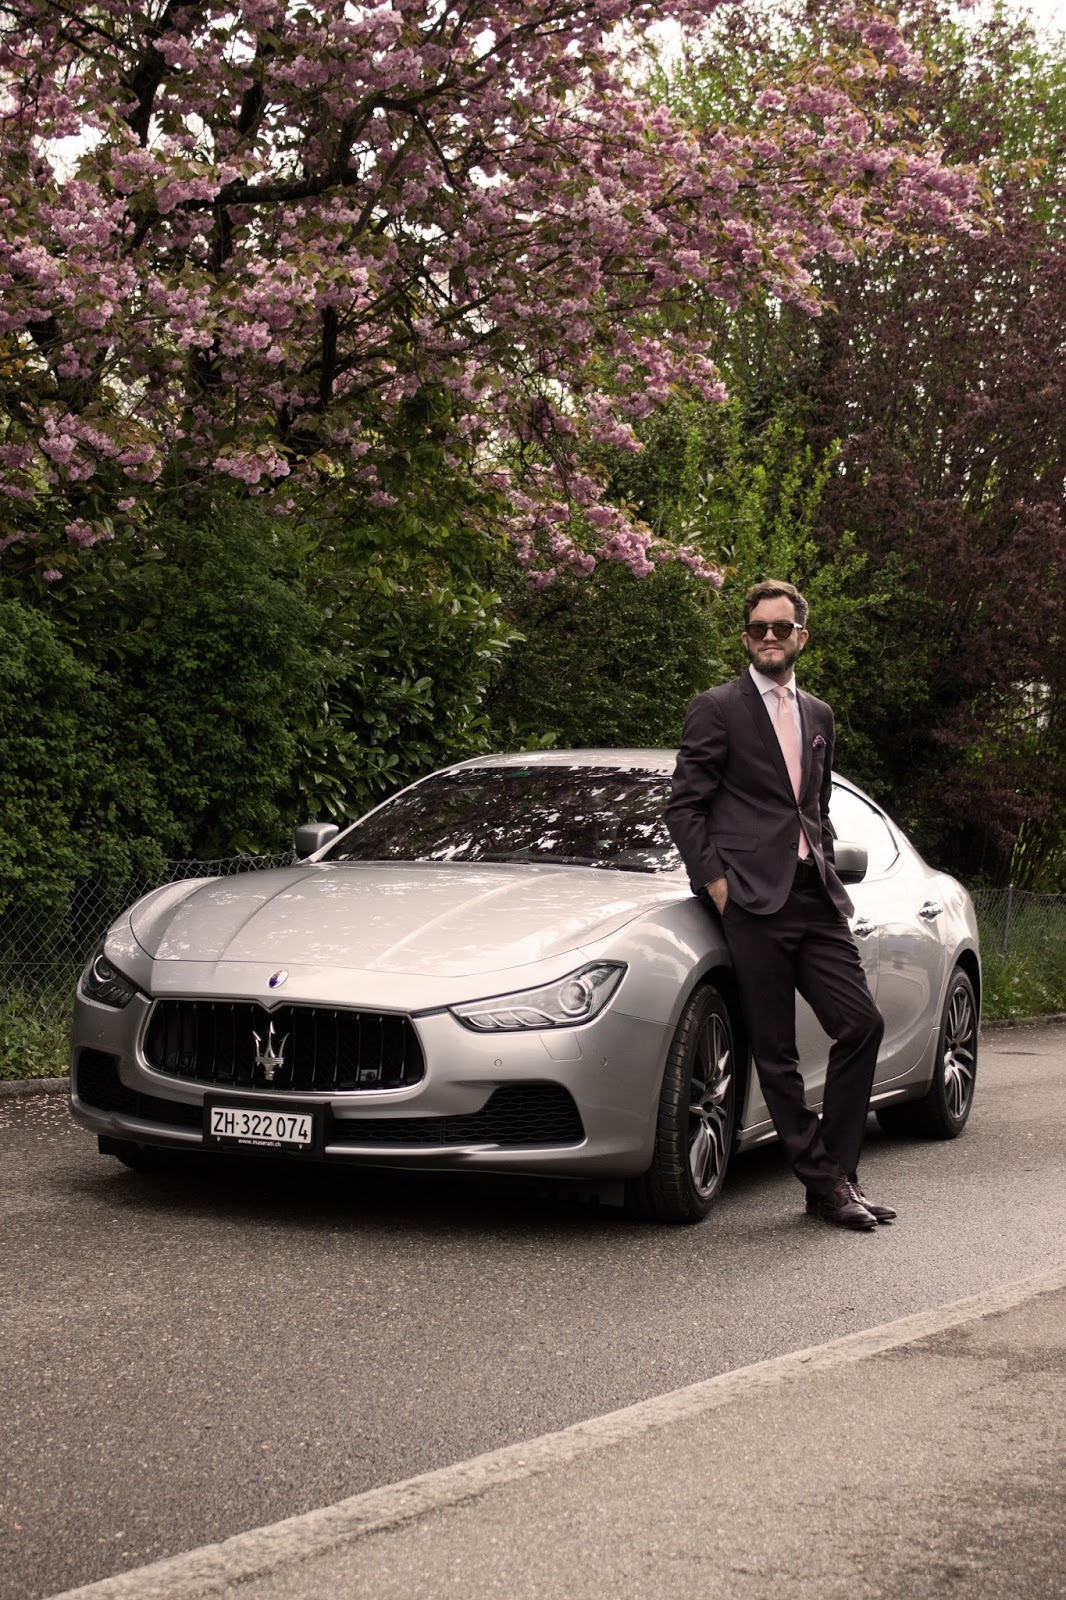 Maserati Ghibli Q4 >> The Maserati Ghibli SQ4 - From Dr. Jekyll To Mr. Hyde - A ...